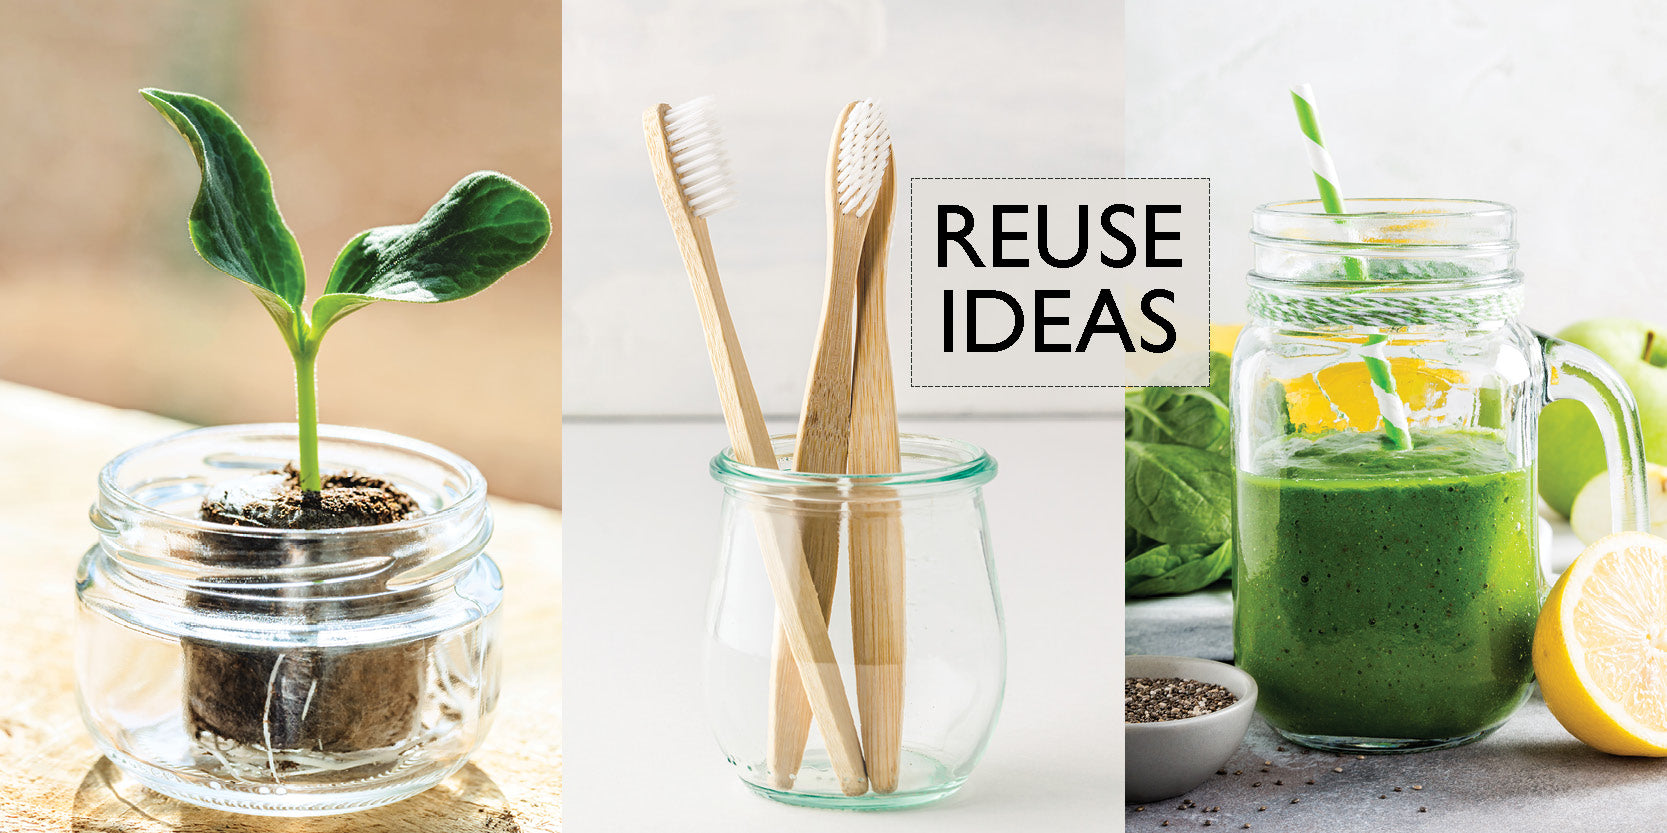 Reduce Waste At Home - Less Waste Home Ebook; Step-by-step Sustainable Living Guide